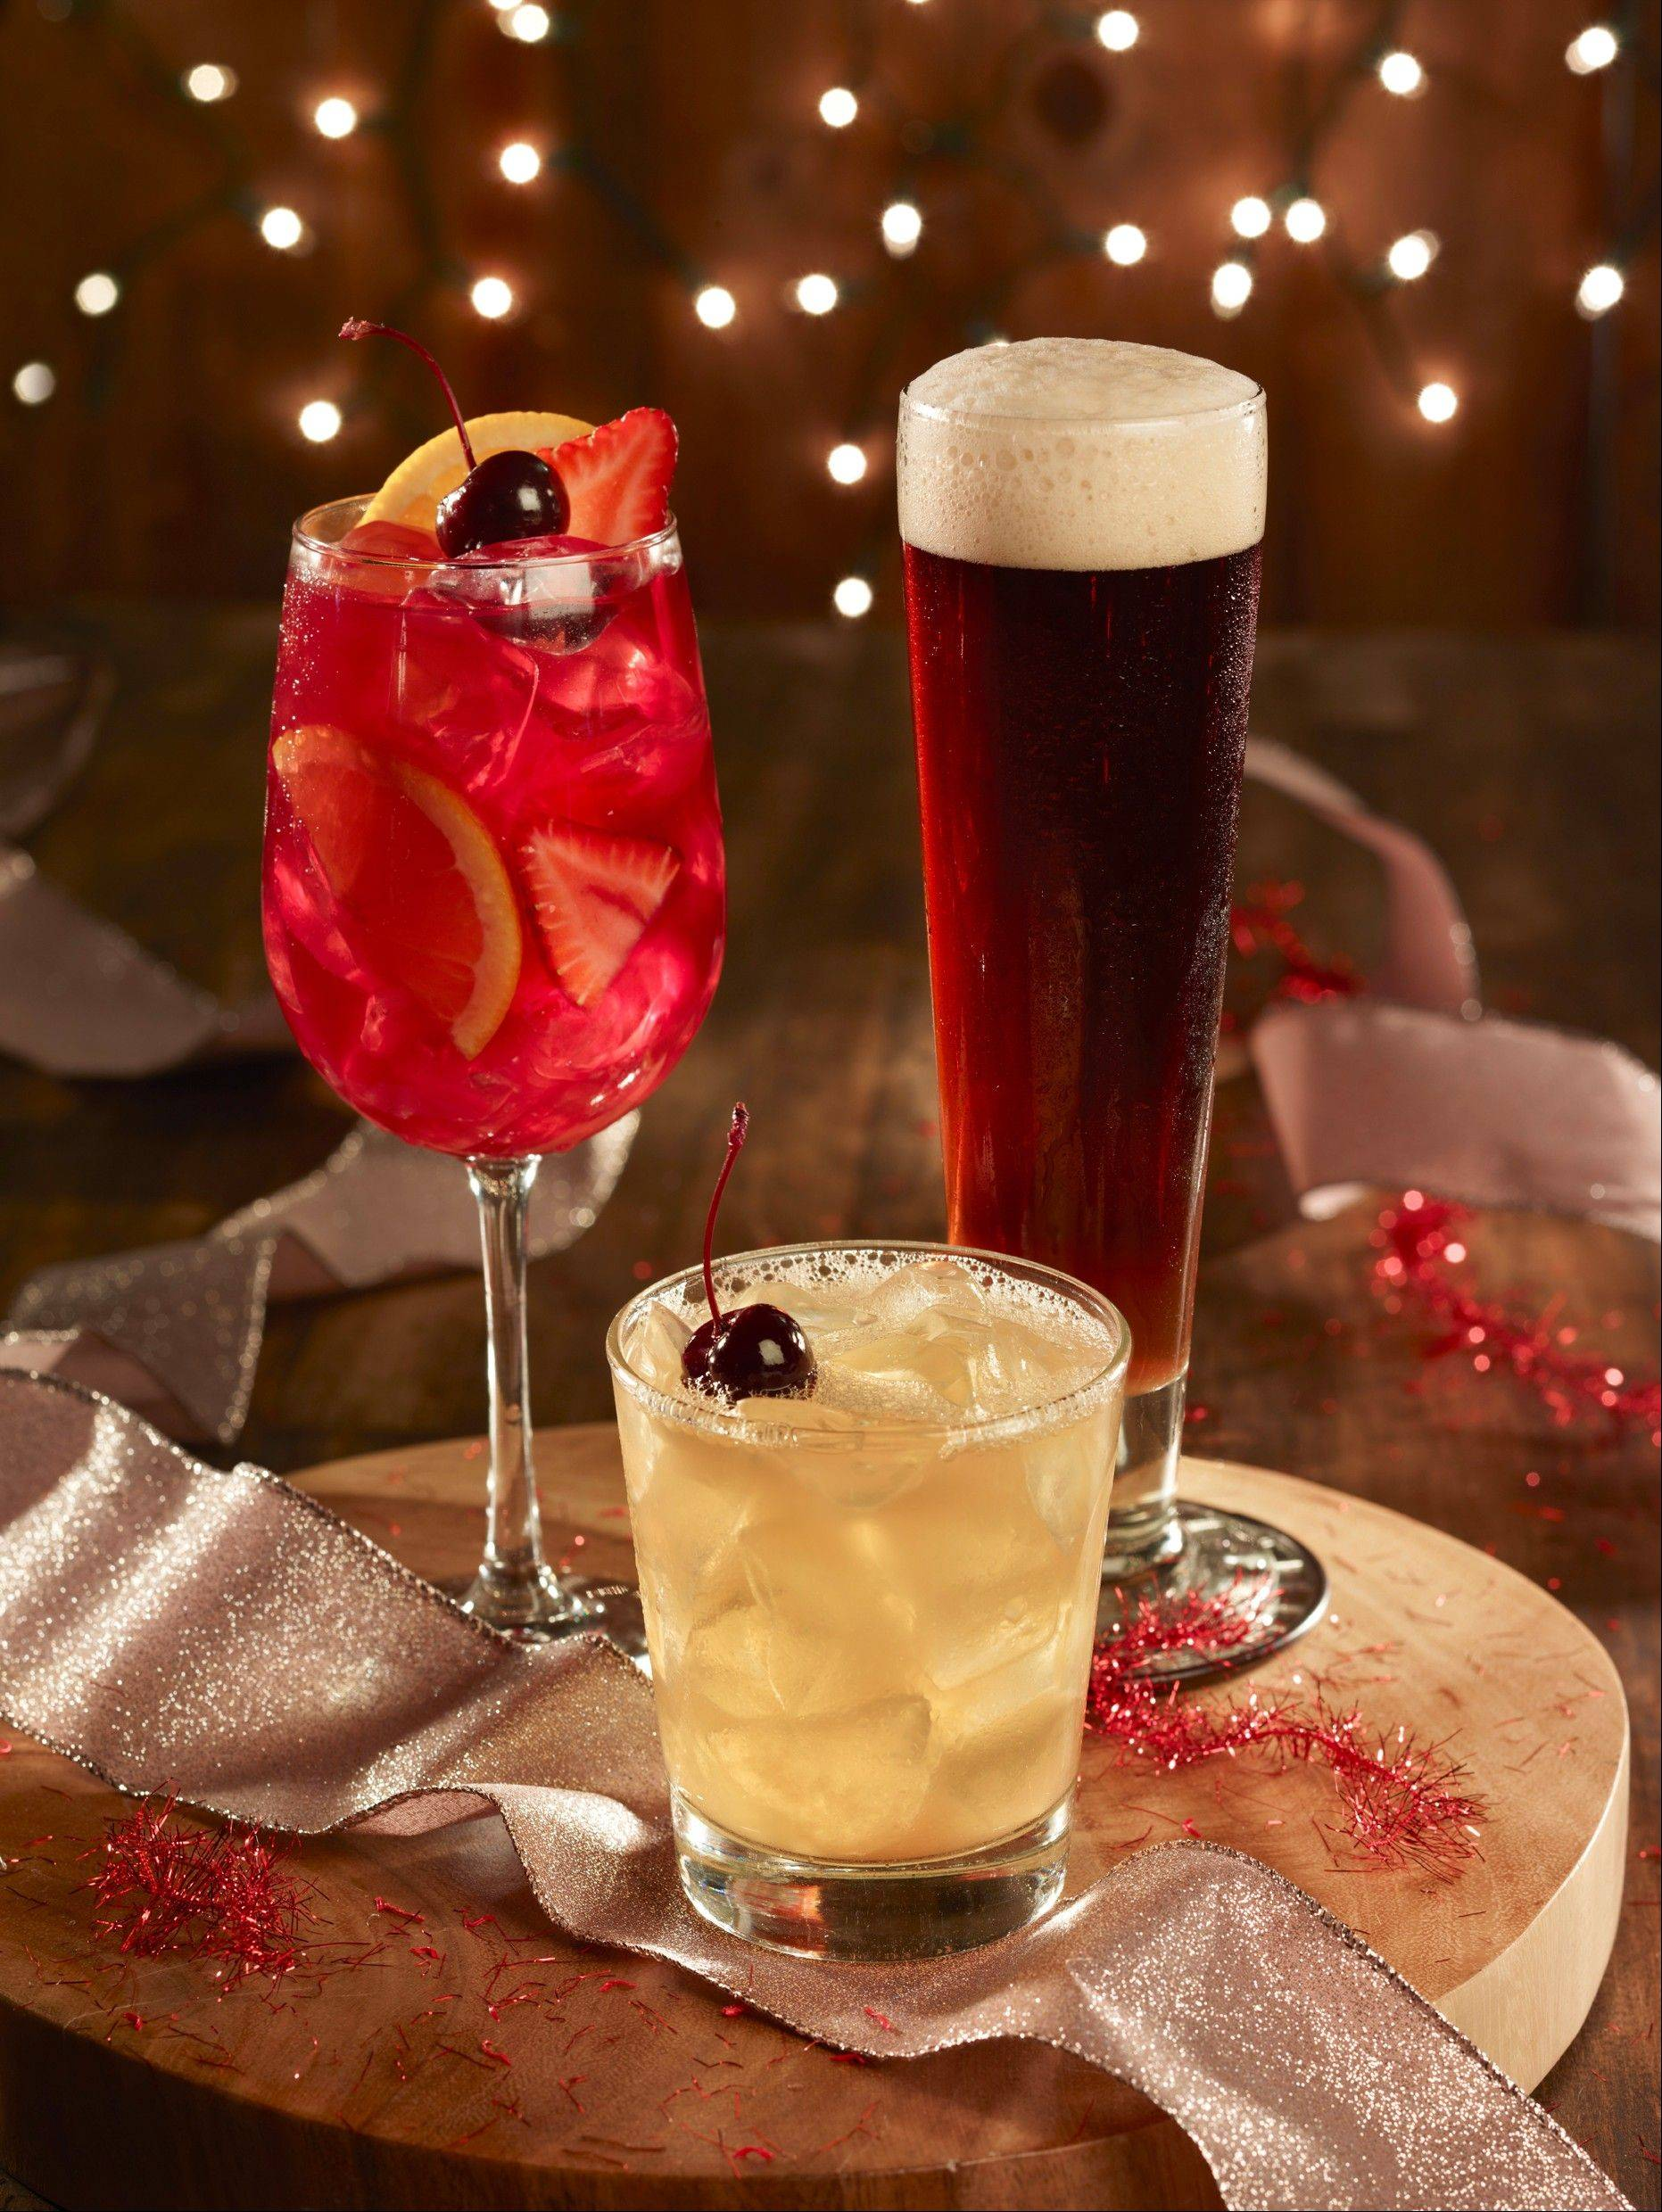 There's a trio of good tidings waiting at P.F. Changs.